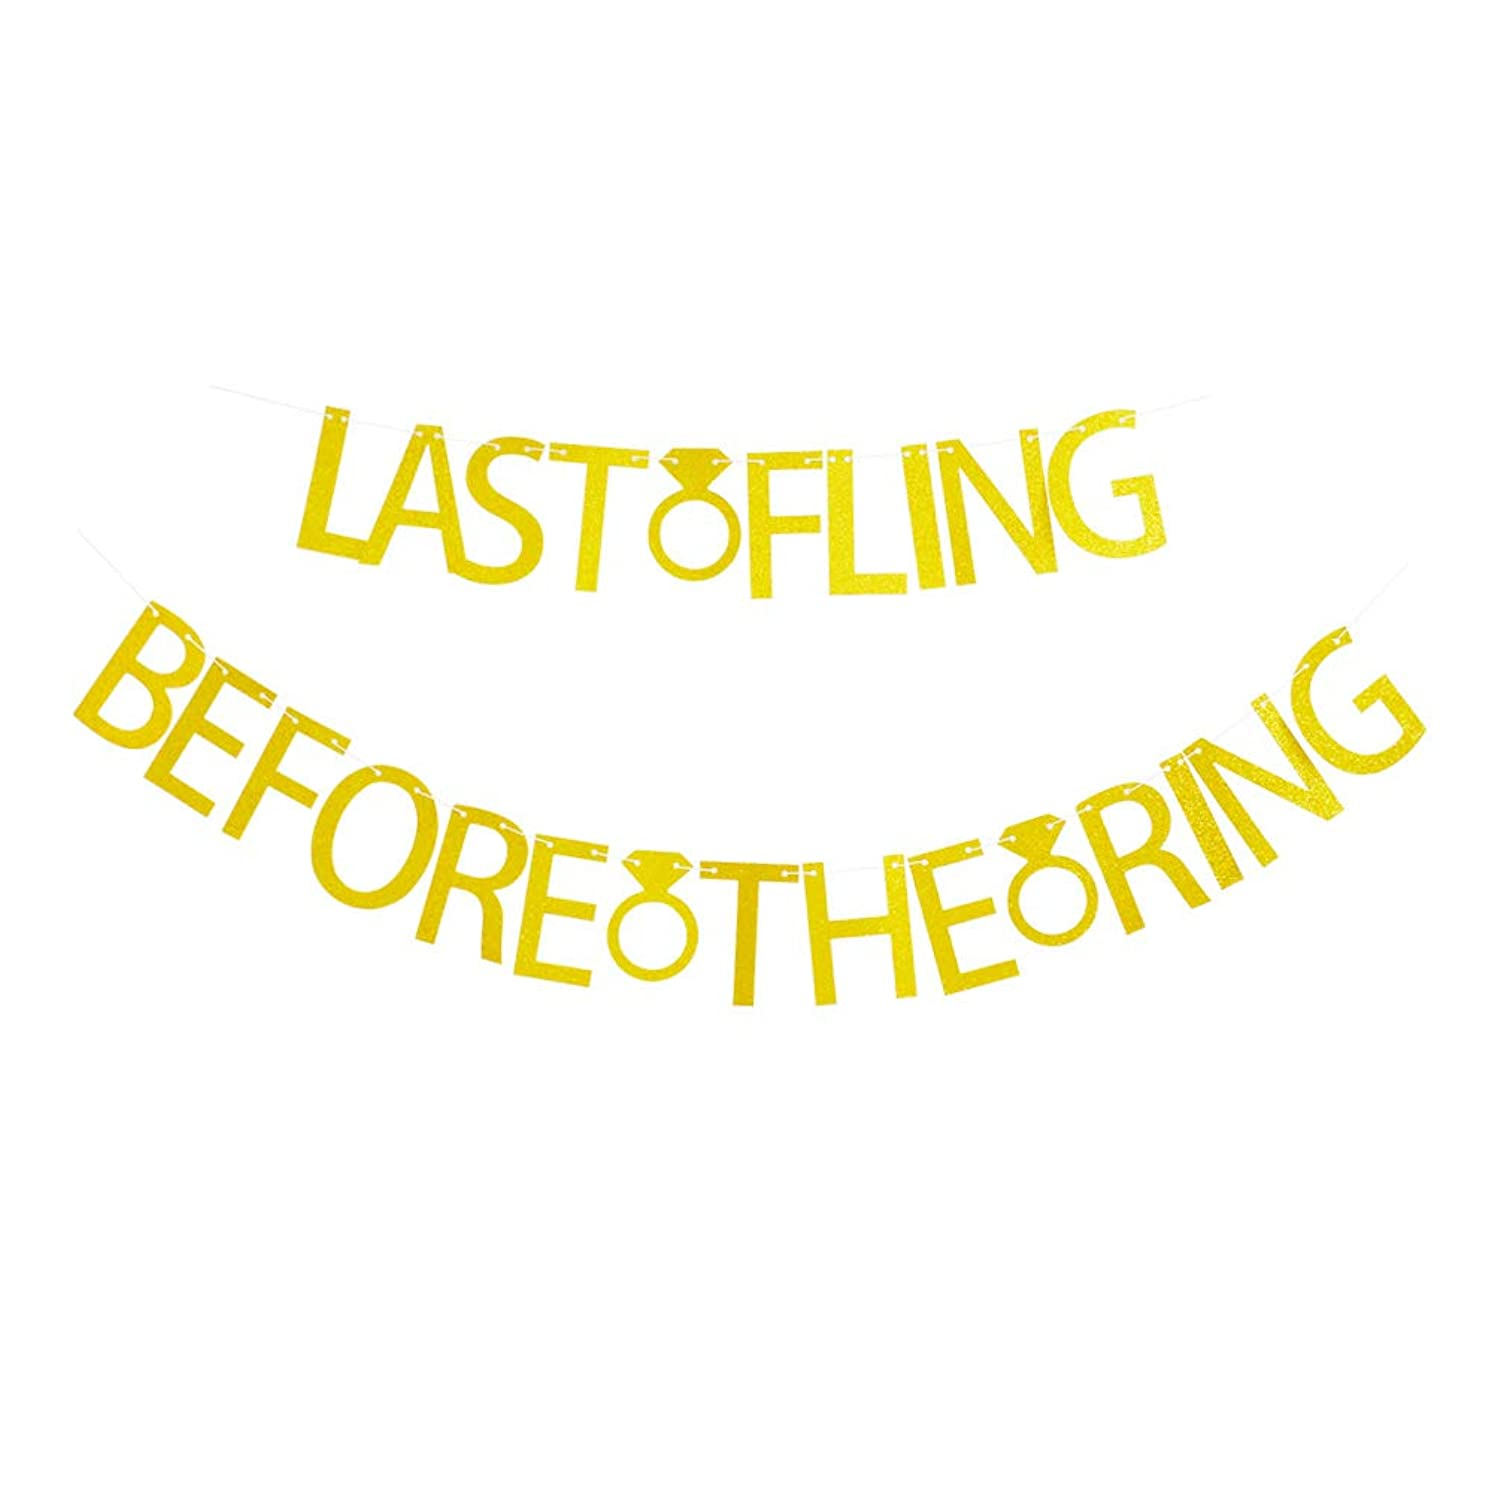 Last Fling Before The Ring Gold Glitter Banner for Bachelorette - Bridal Shower - Wedding Party Sign Decorations